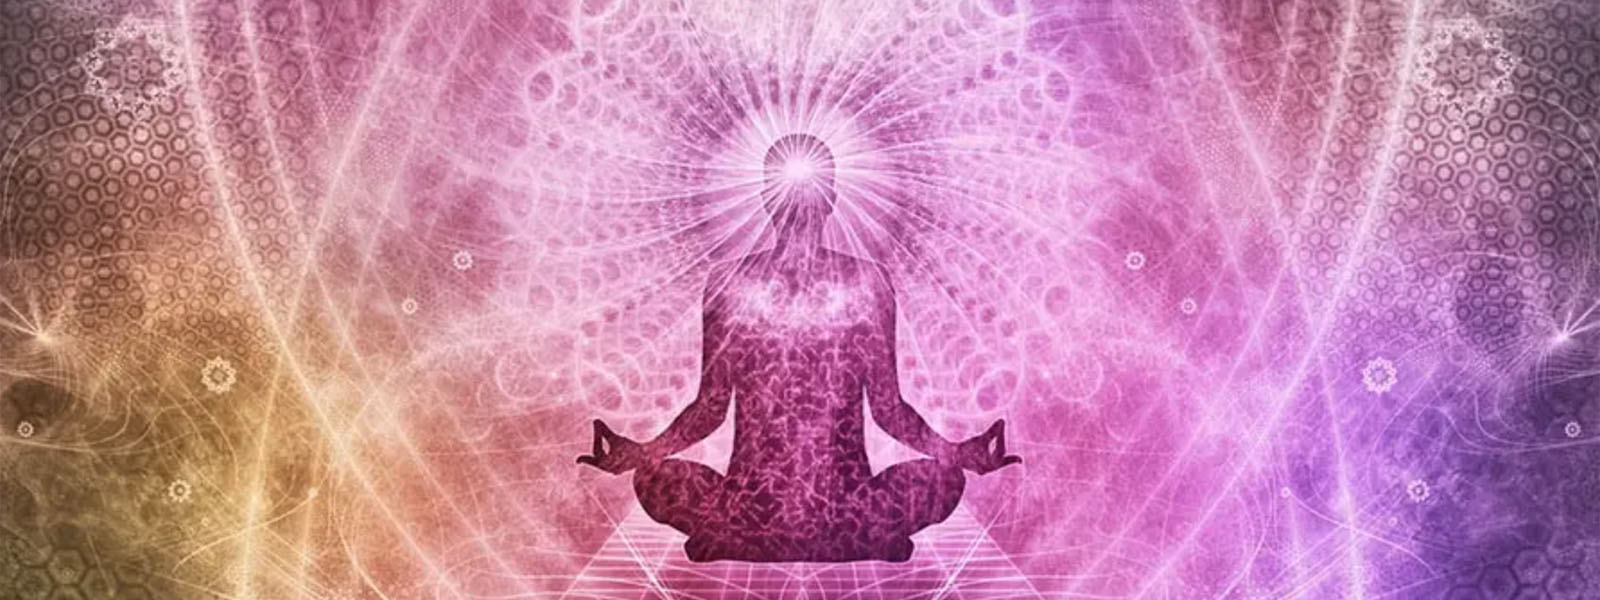 The Meditation Quiz: 21 Days to a New You!